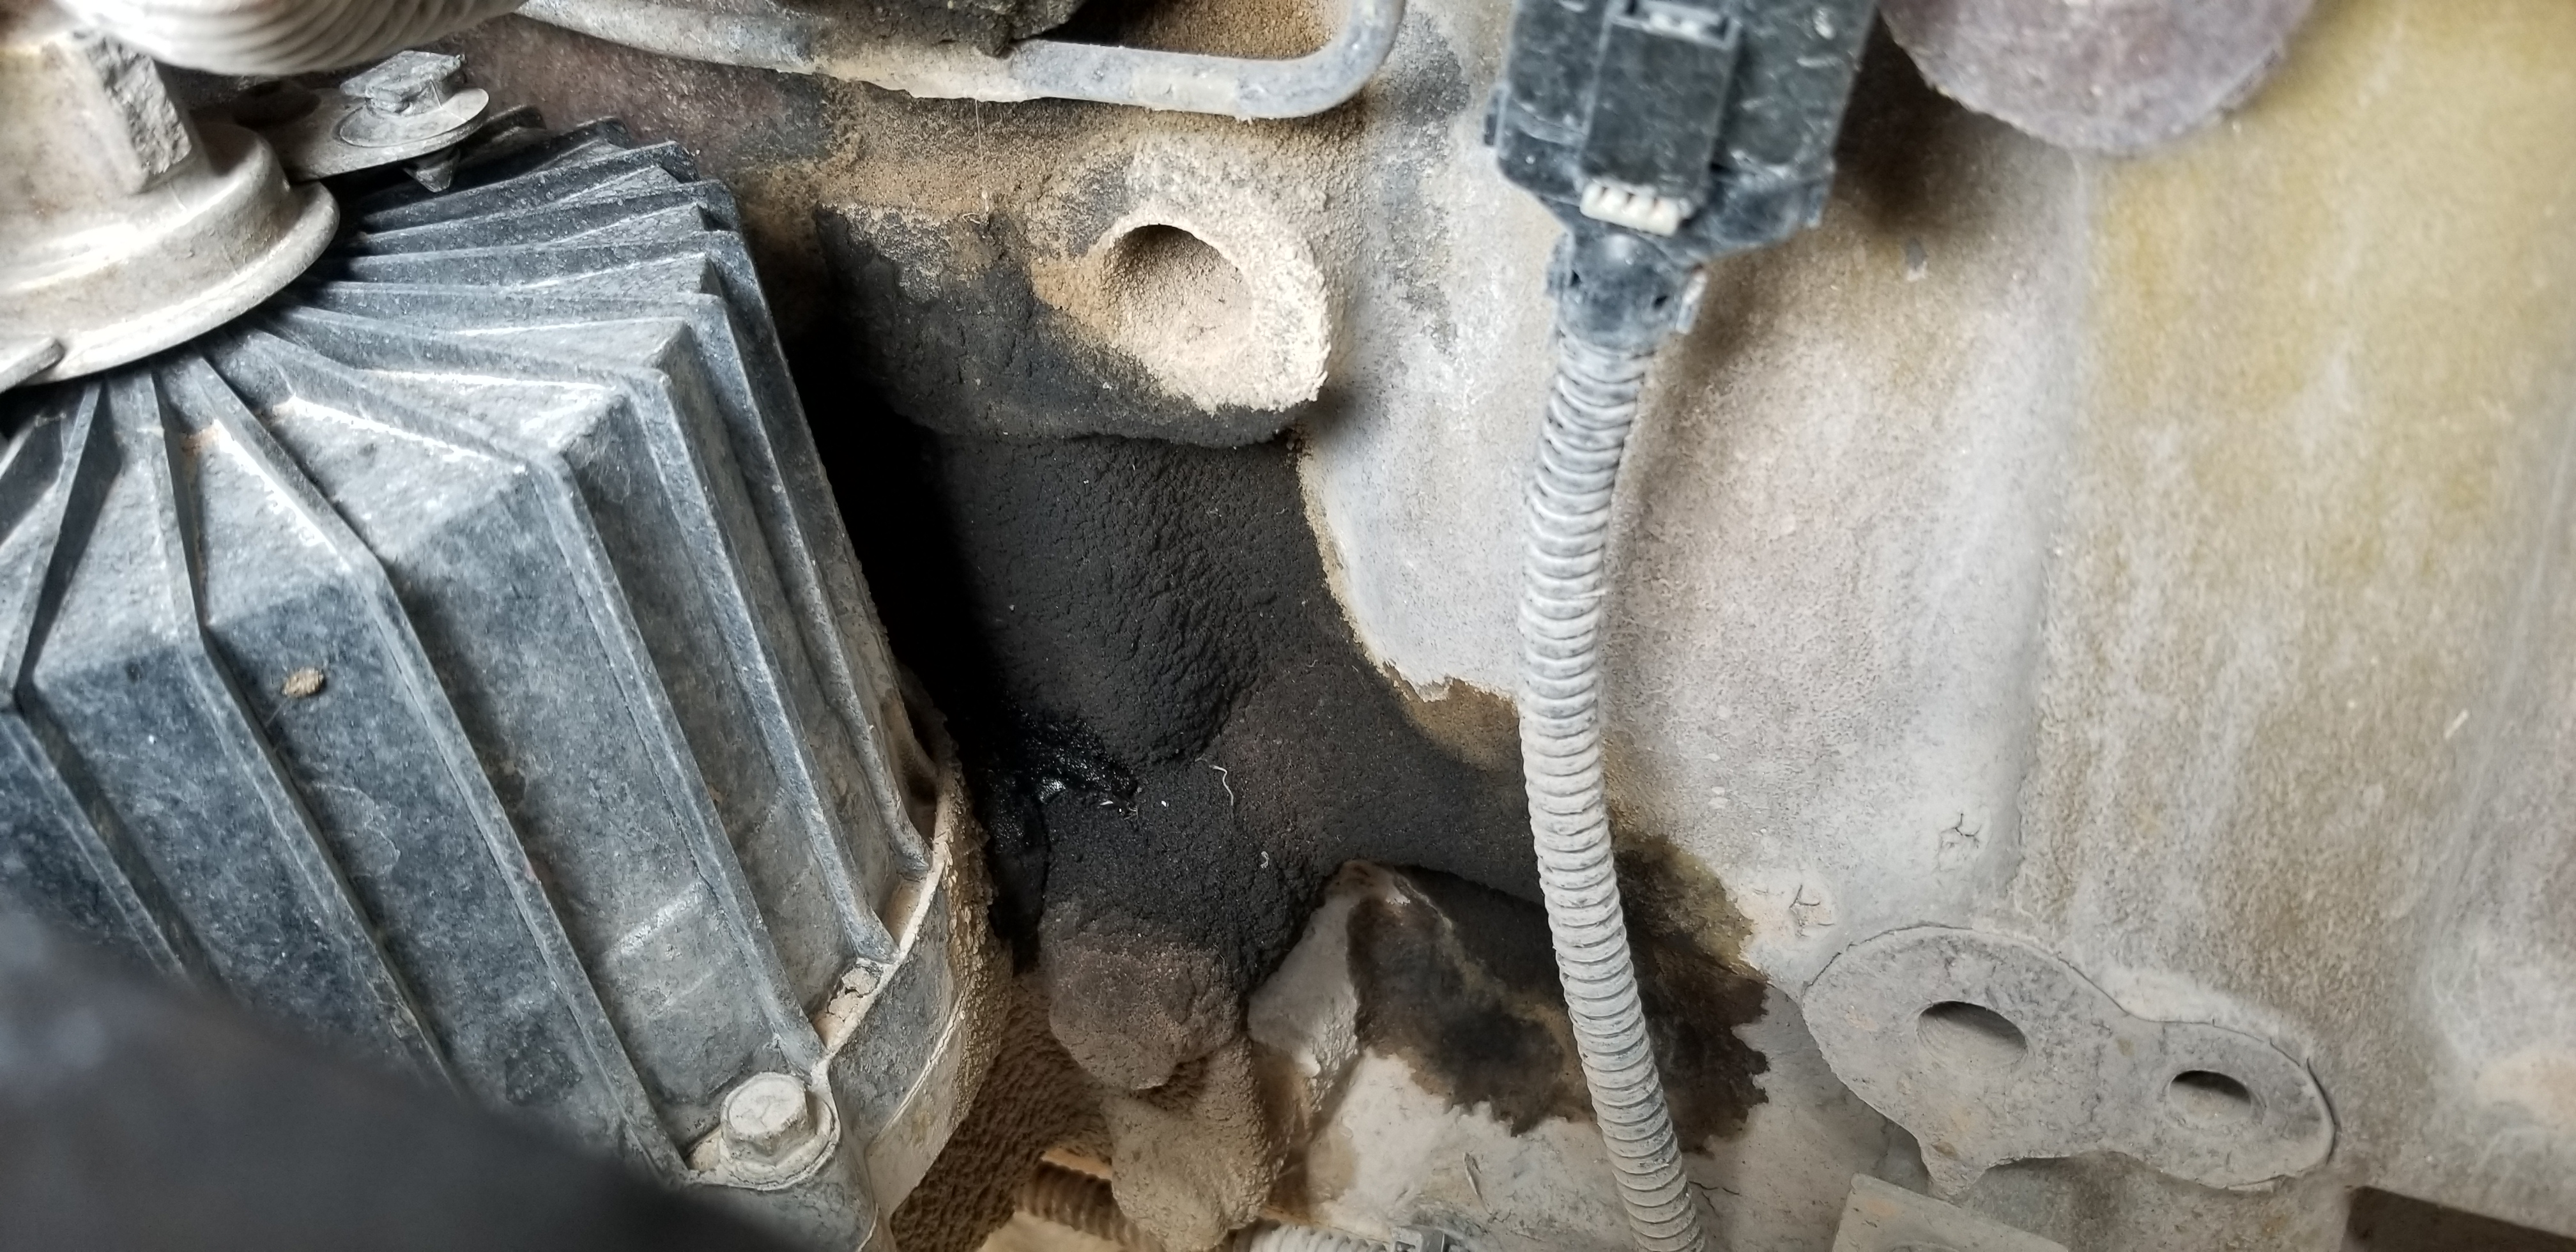 What is this part? And there is smoke coming out from the